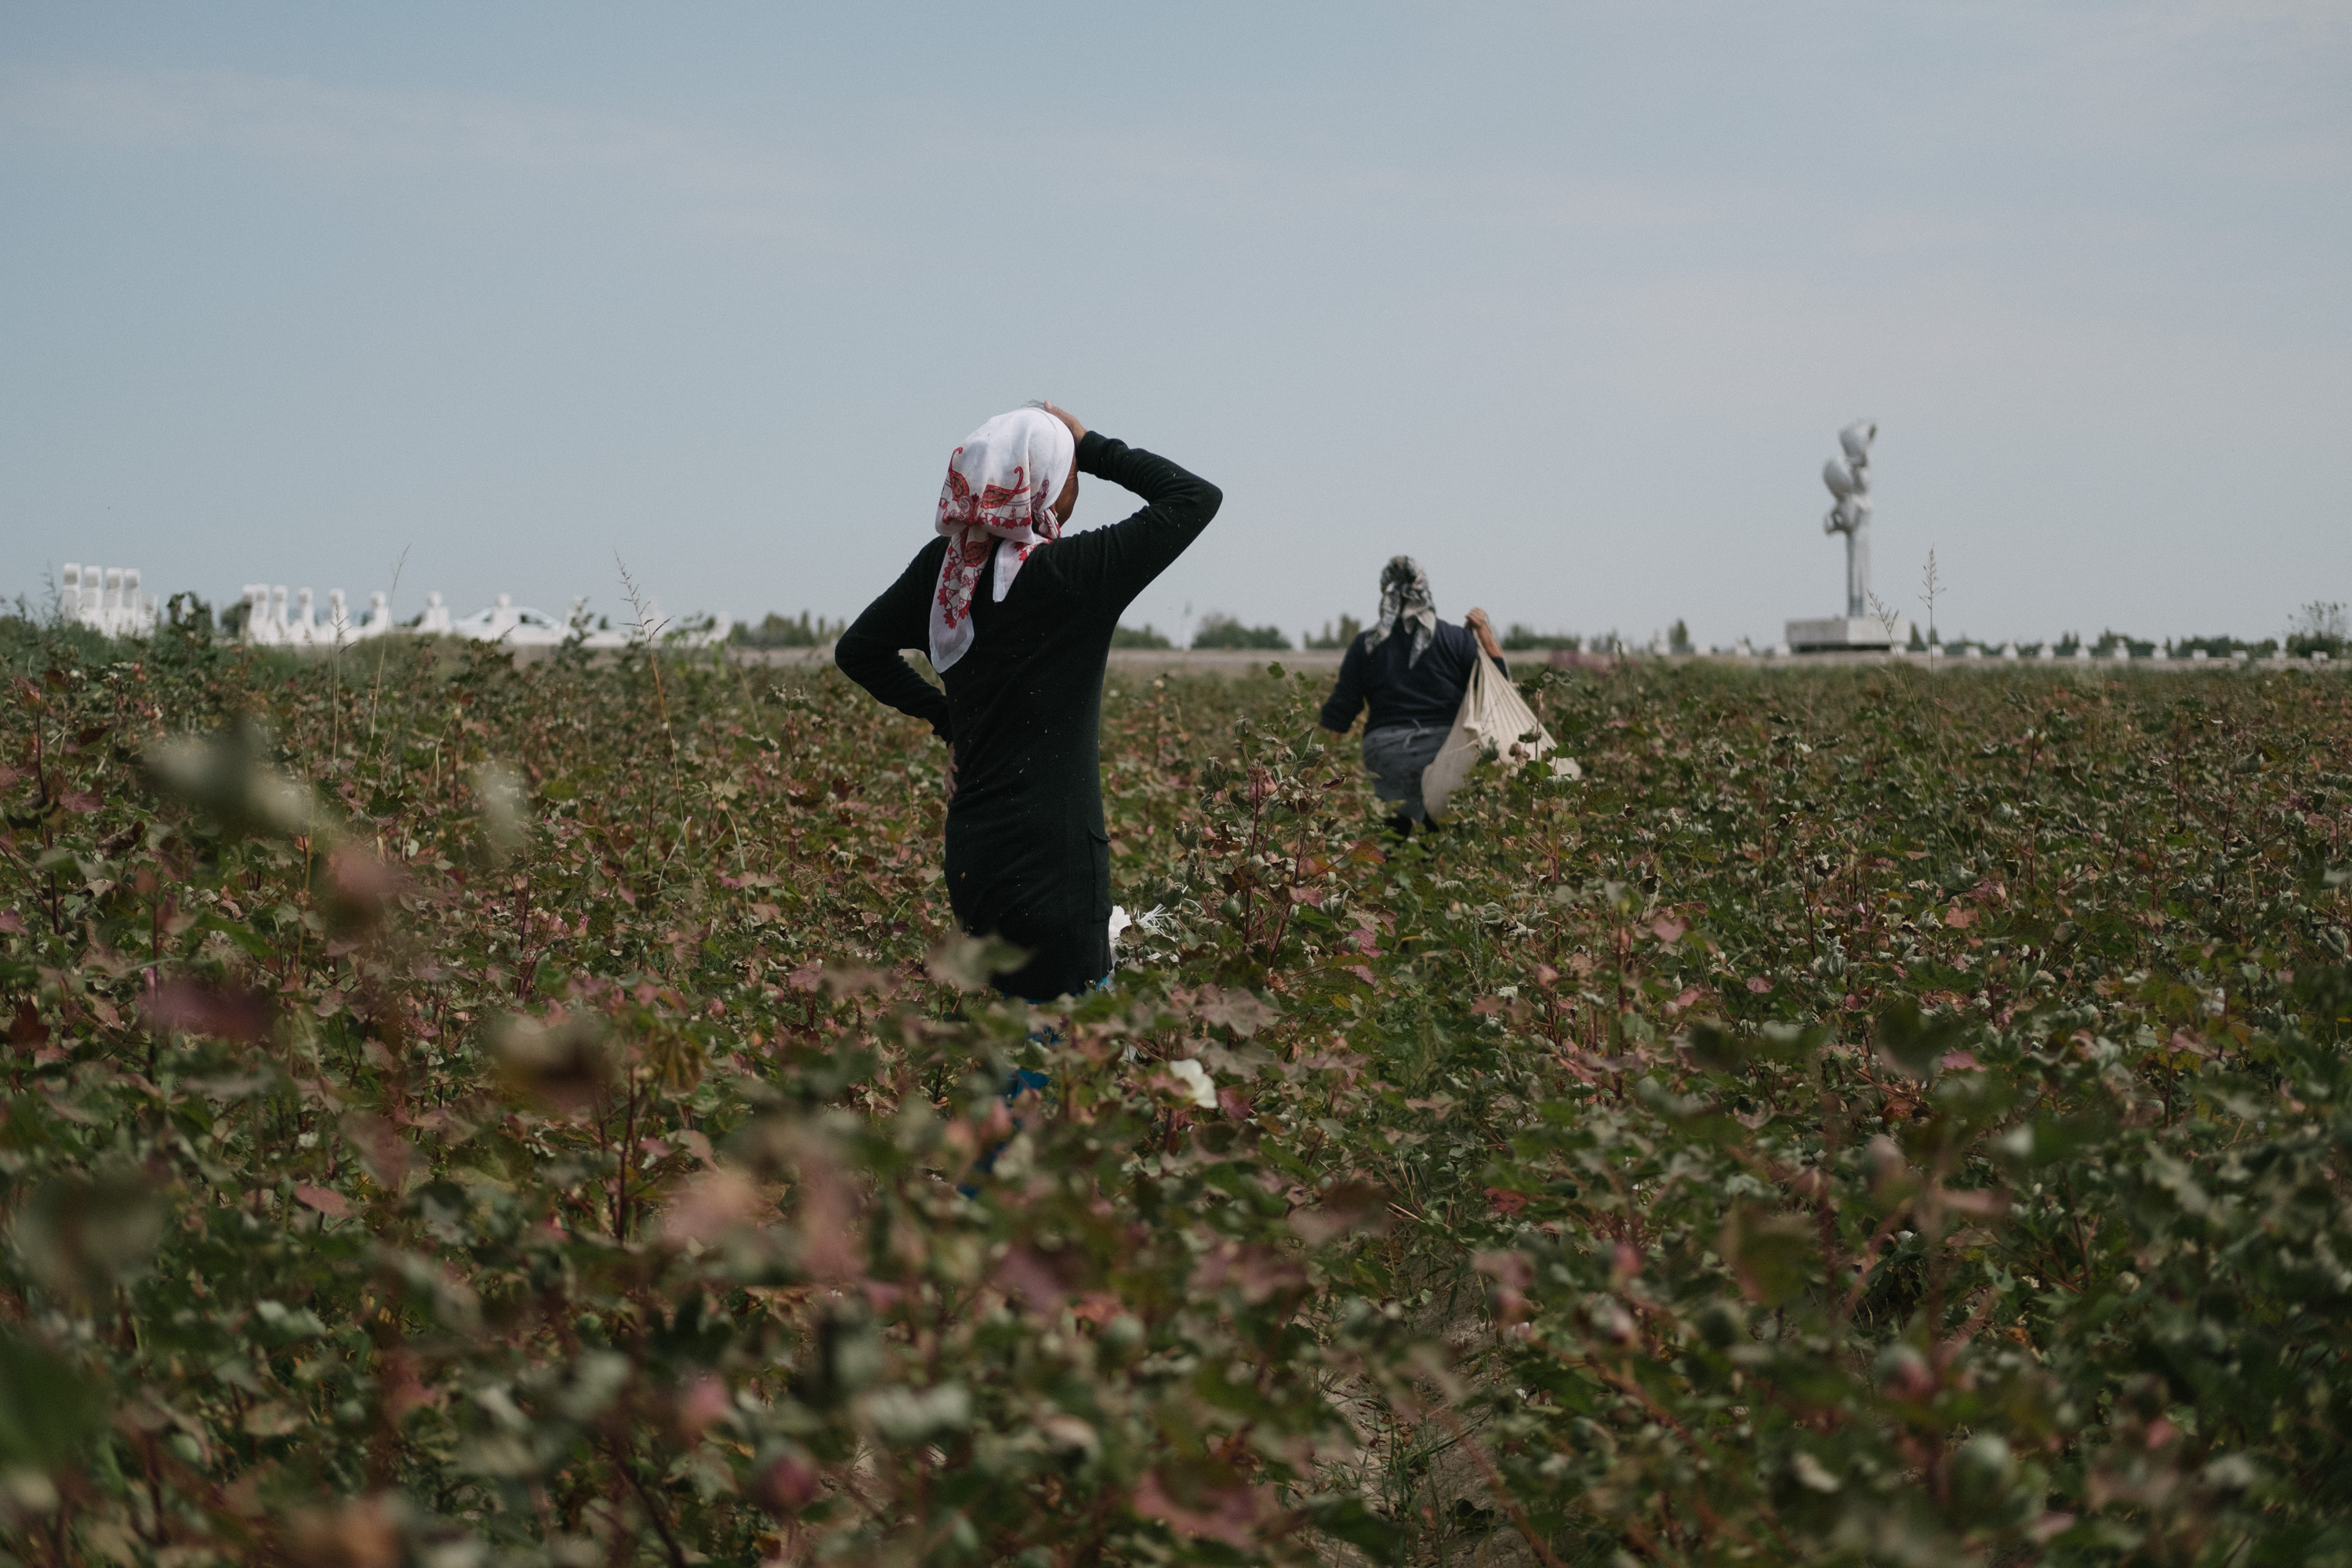 Government of Uzbekistan fails to allow ILO monitoring of the cotton harvest